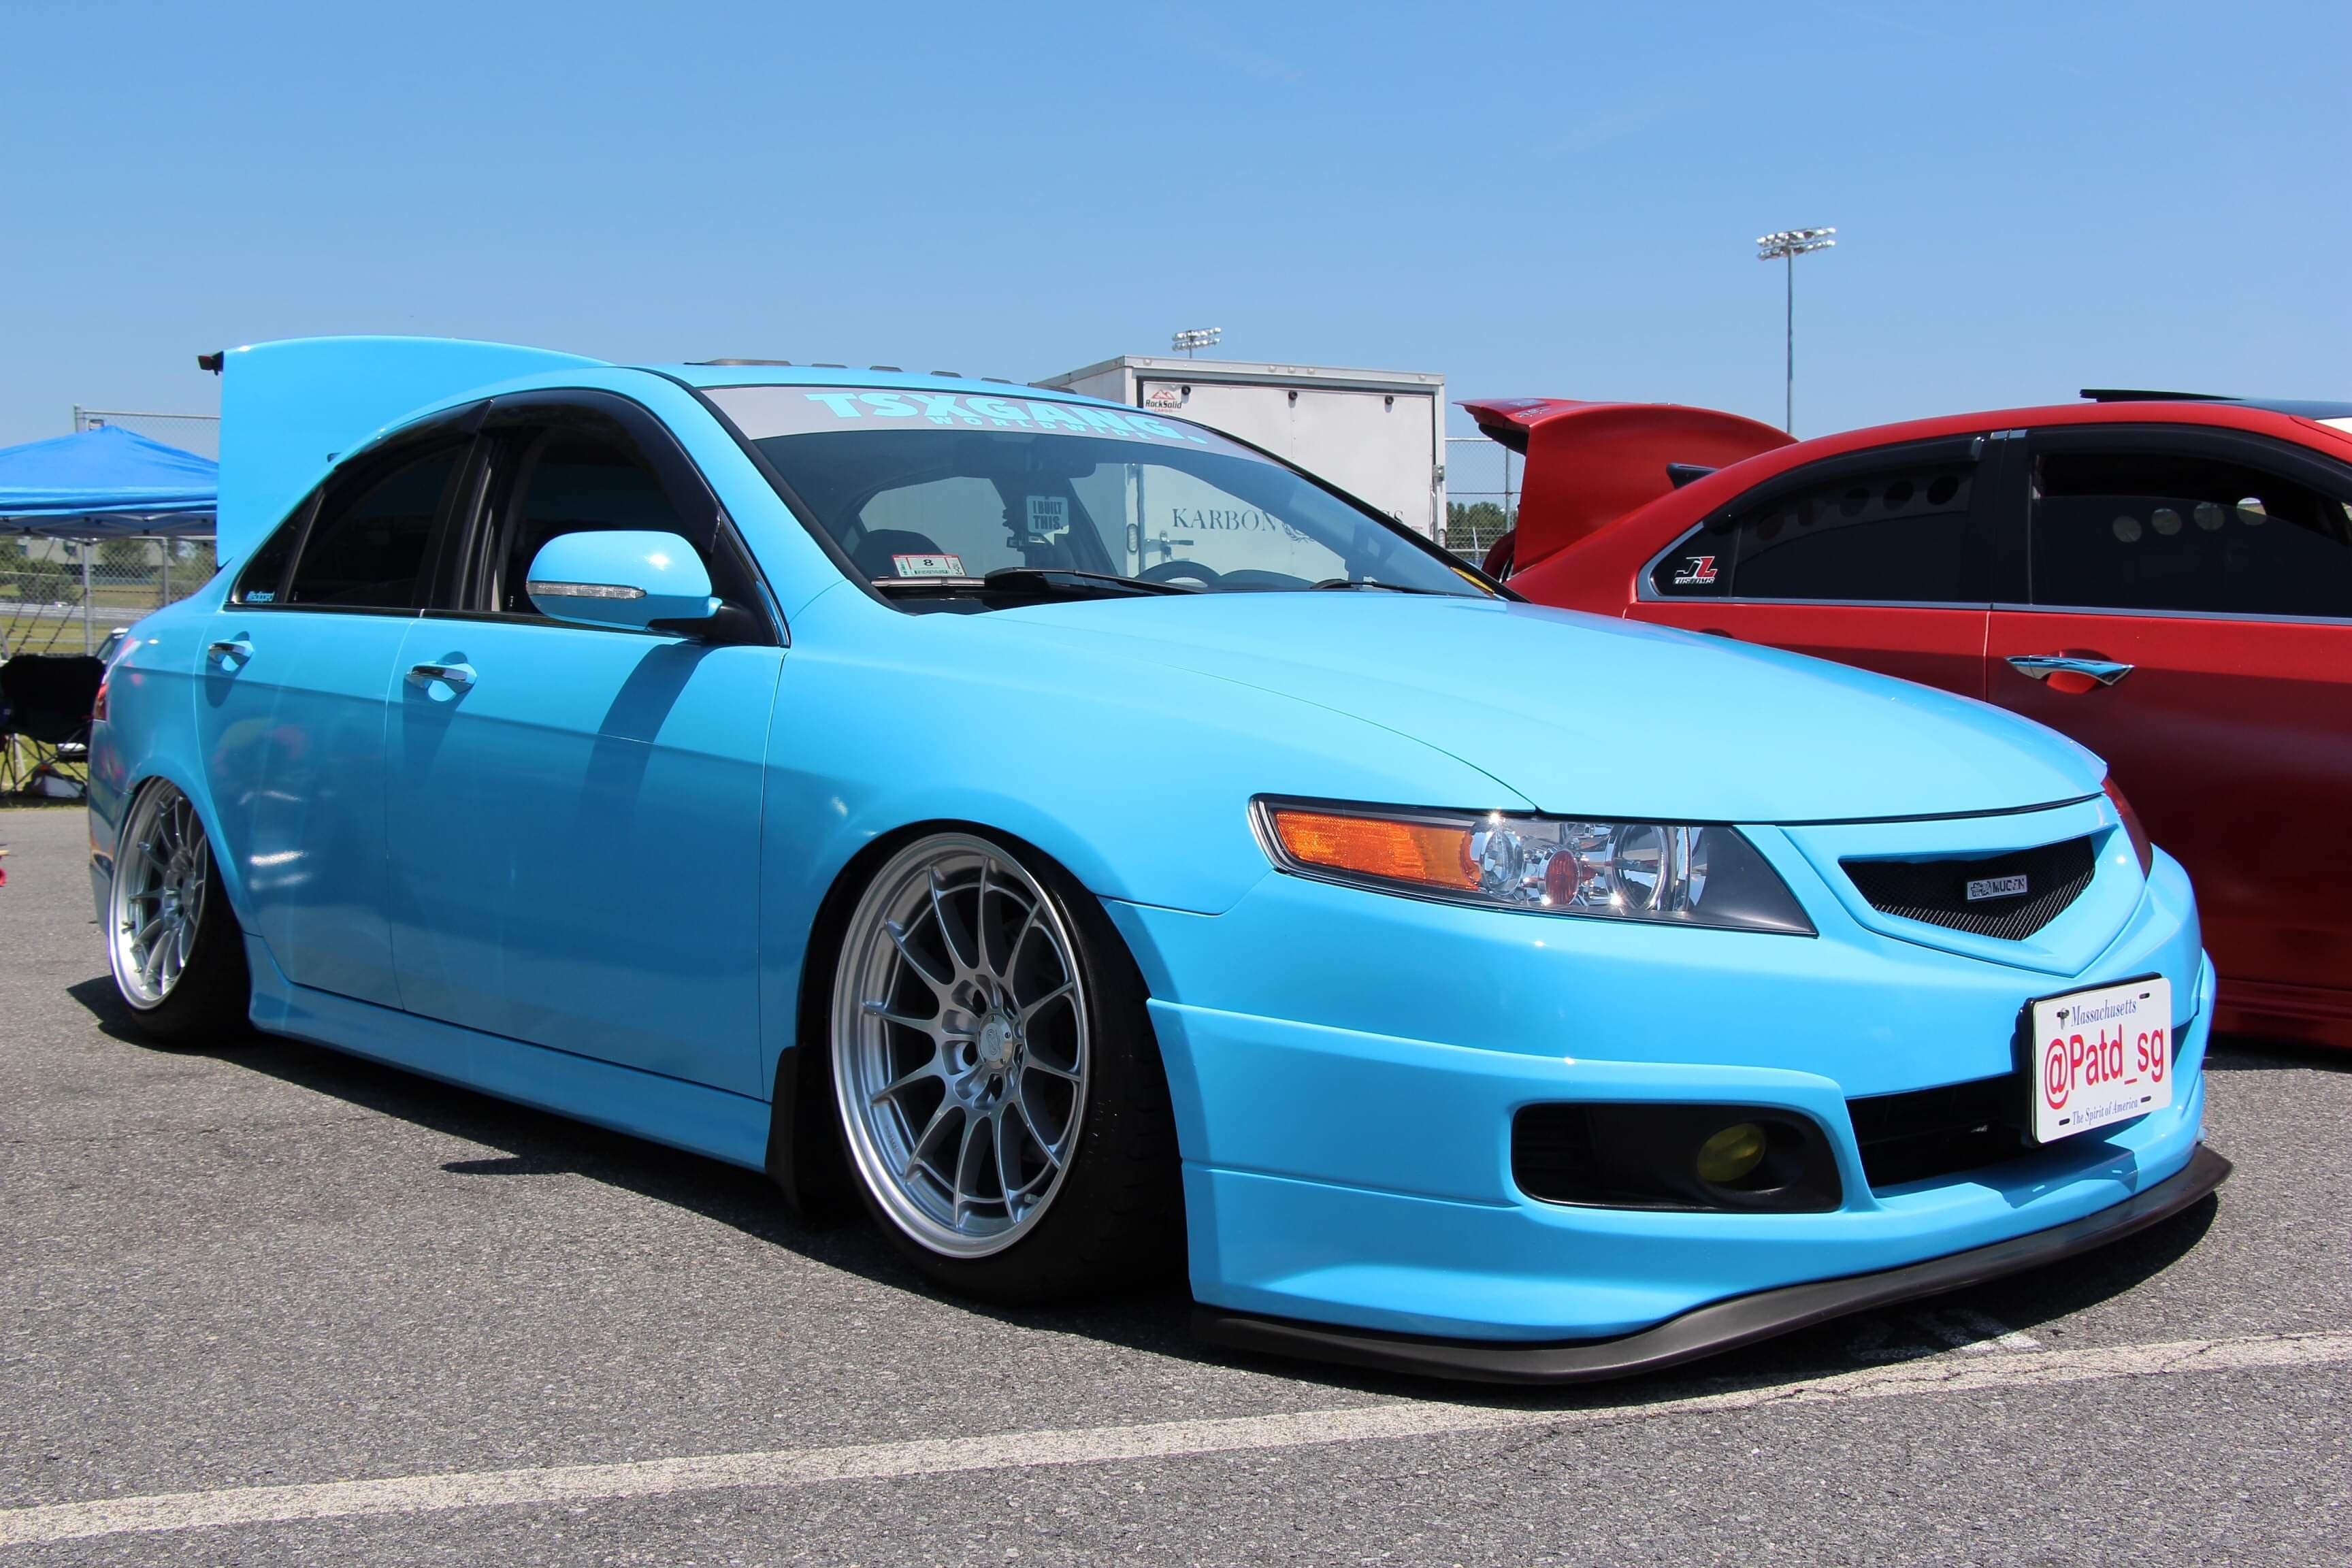 10 Patrick Despin 2007 Acura TSX PASMAG TBGLIVE